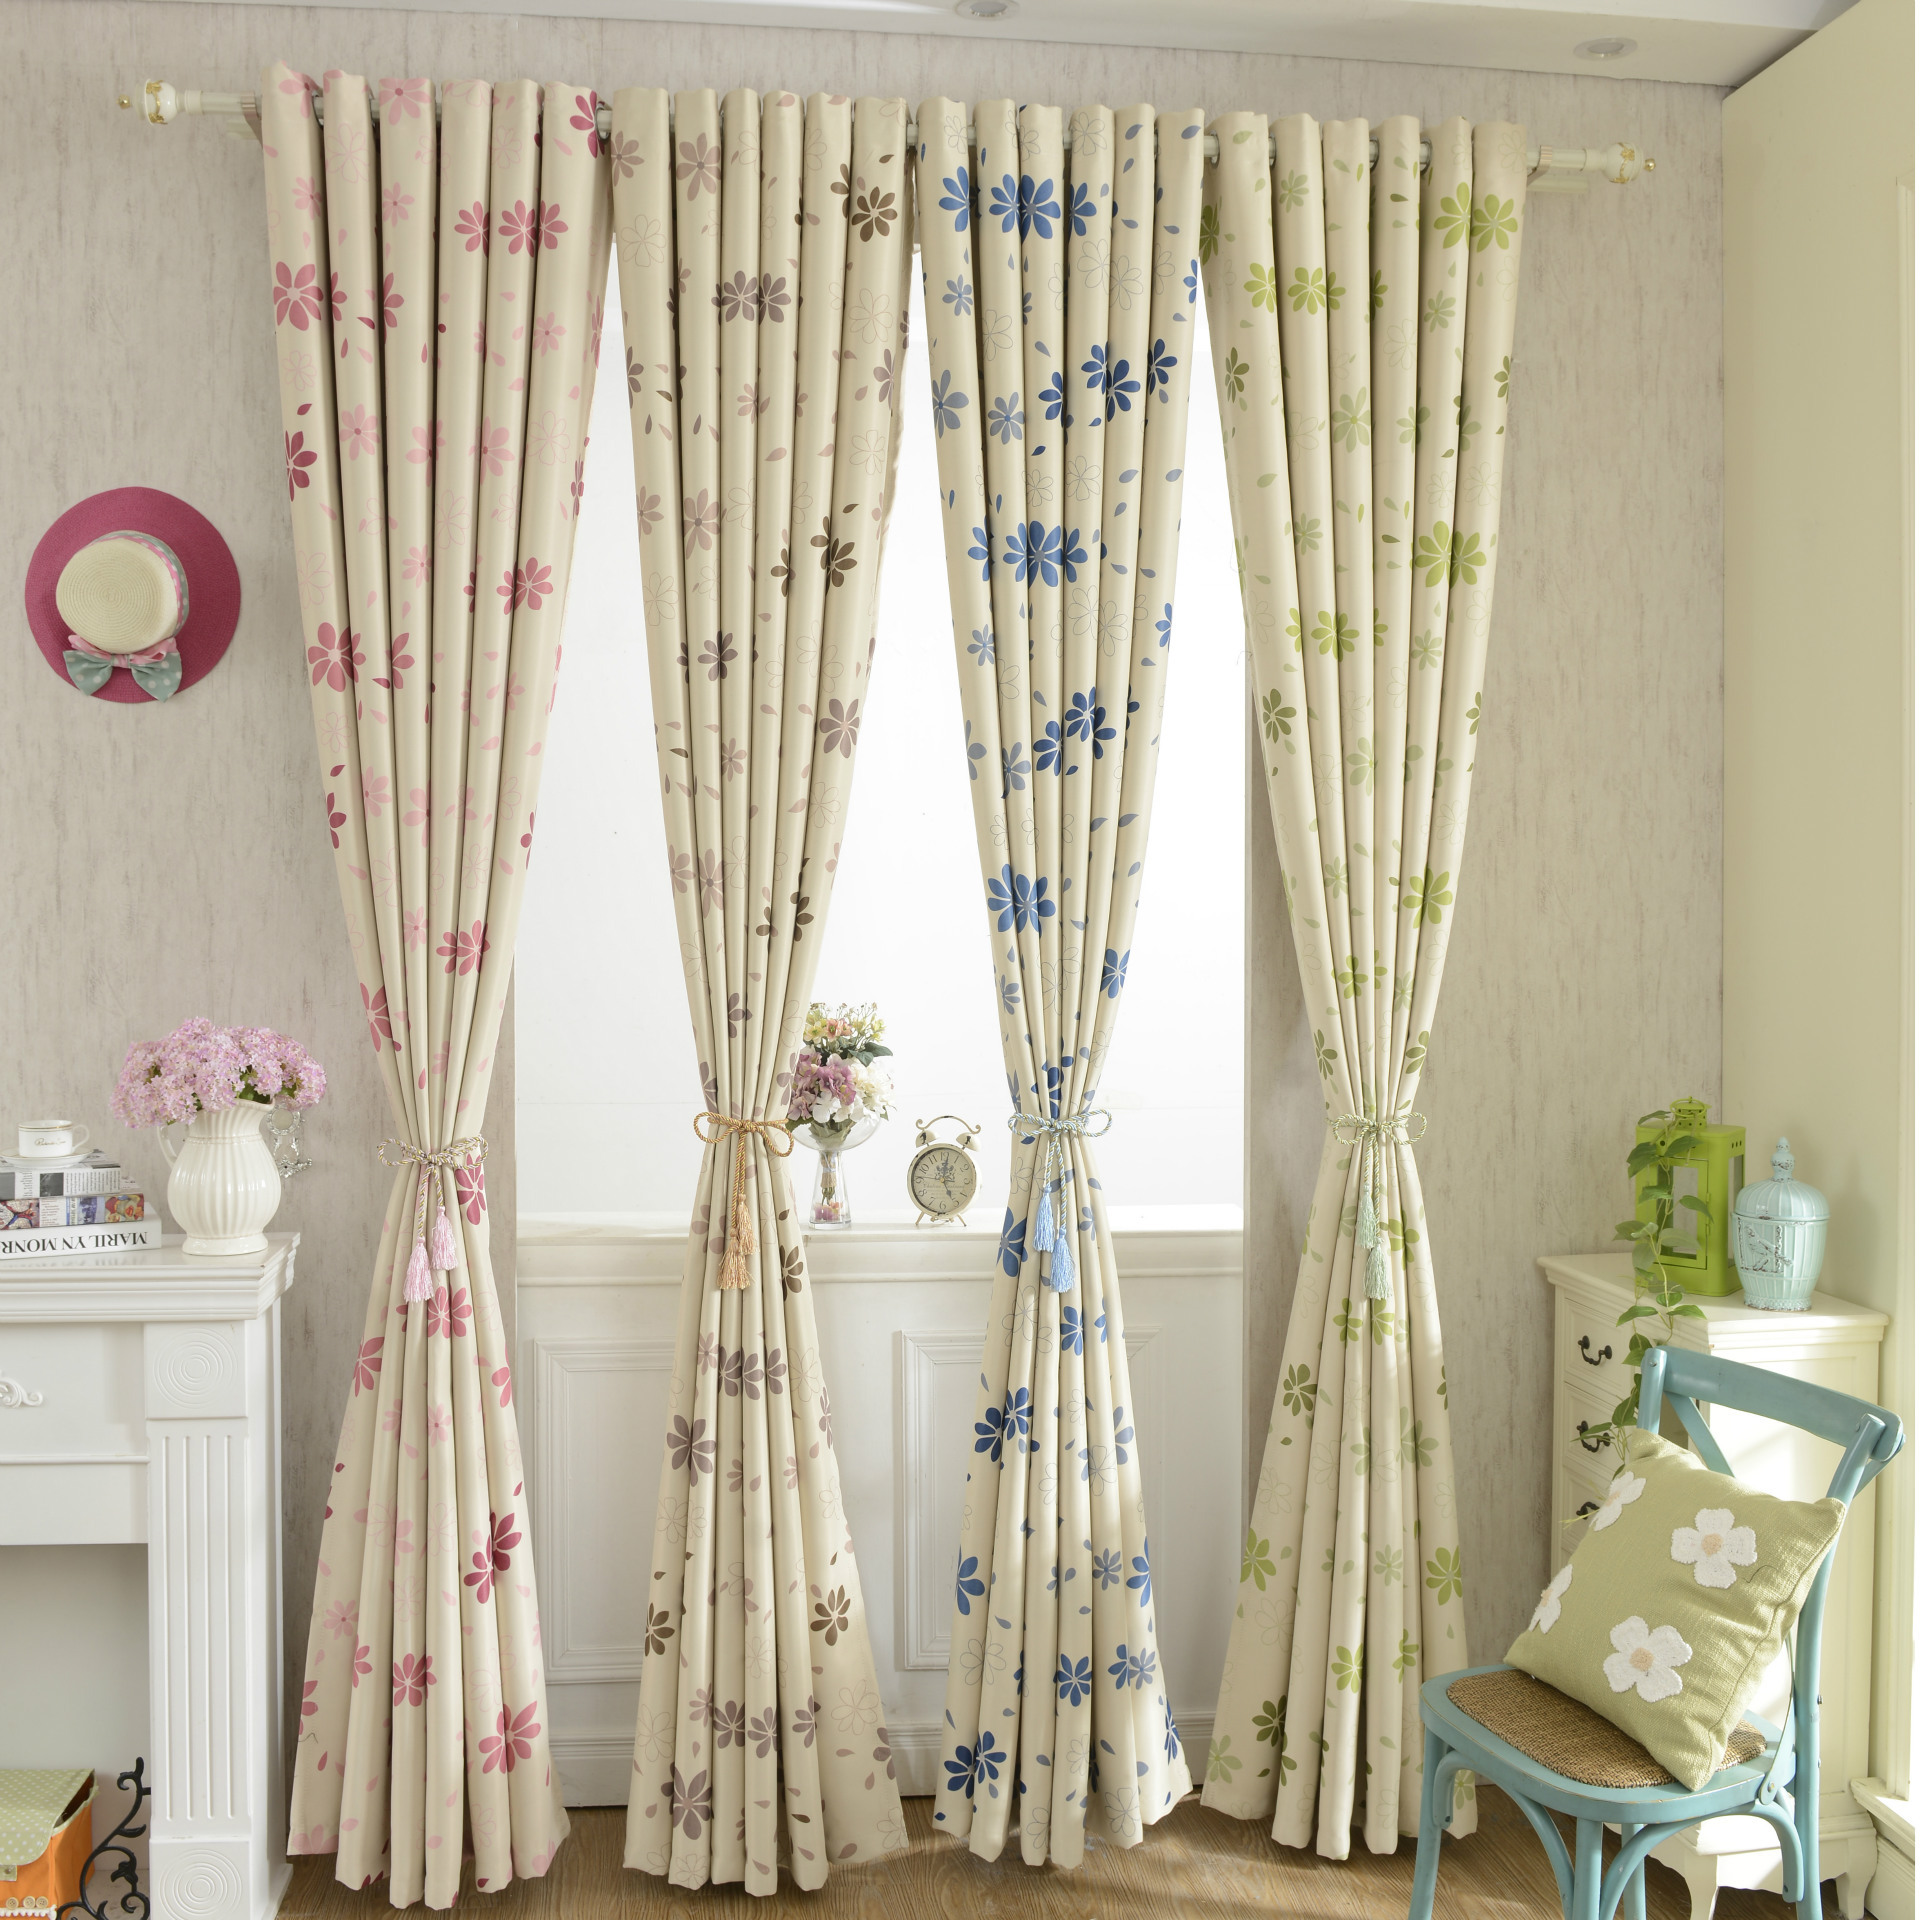 Living Room Curtain Sets High Quality Bedroom Curtain Set Promotion Shop For High Quality